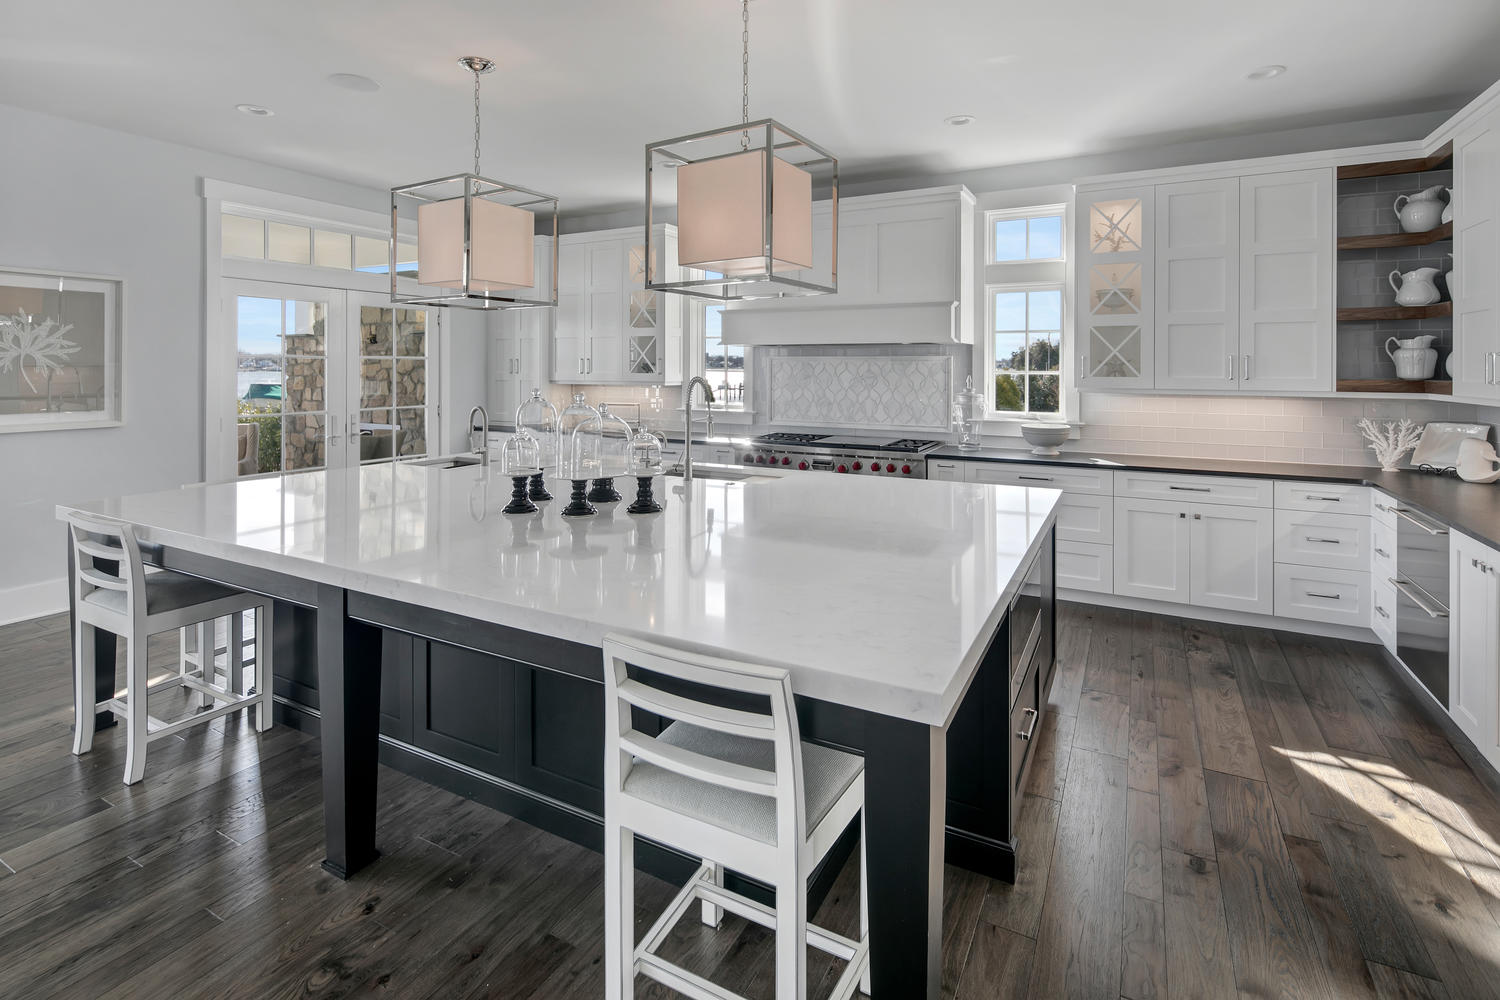 It 39 s black and white brielle new jersey by design line kitchens - Design line kitchens ...